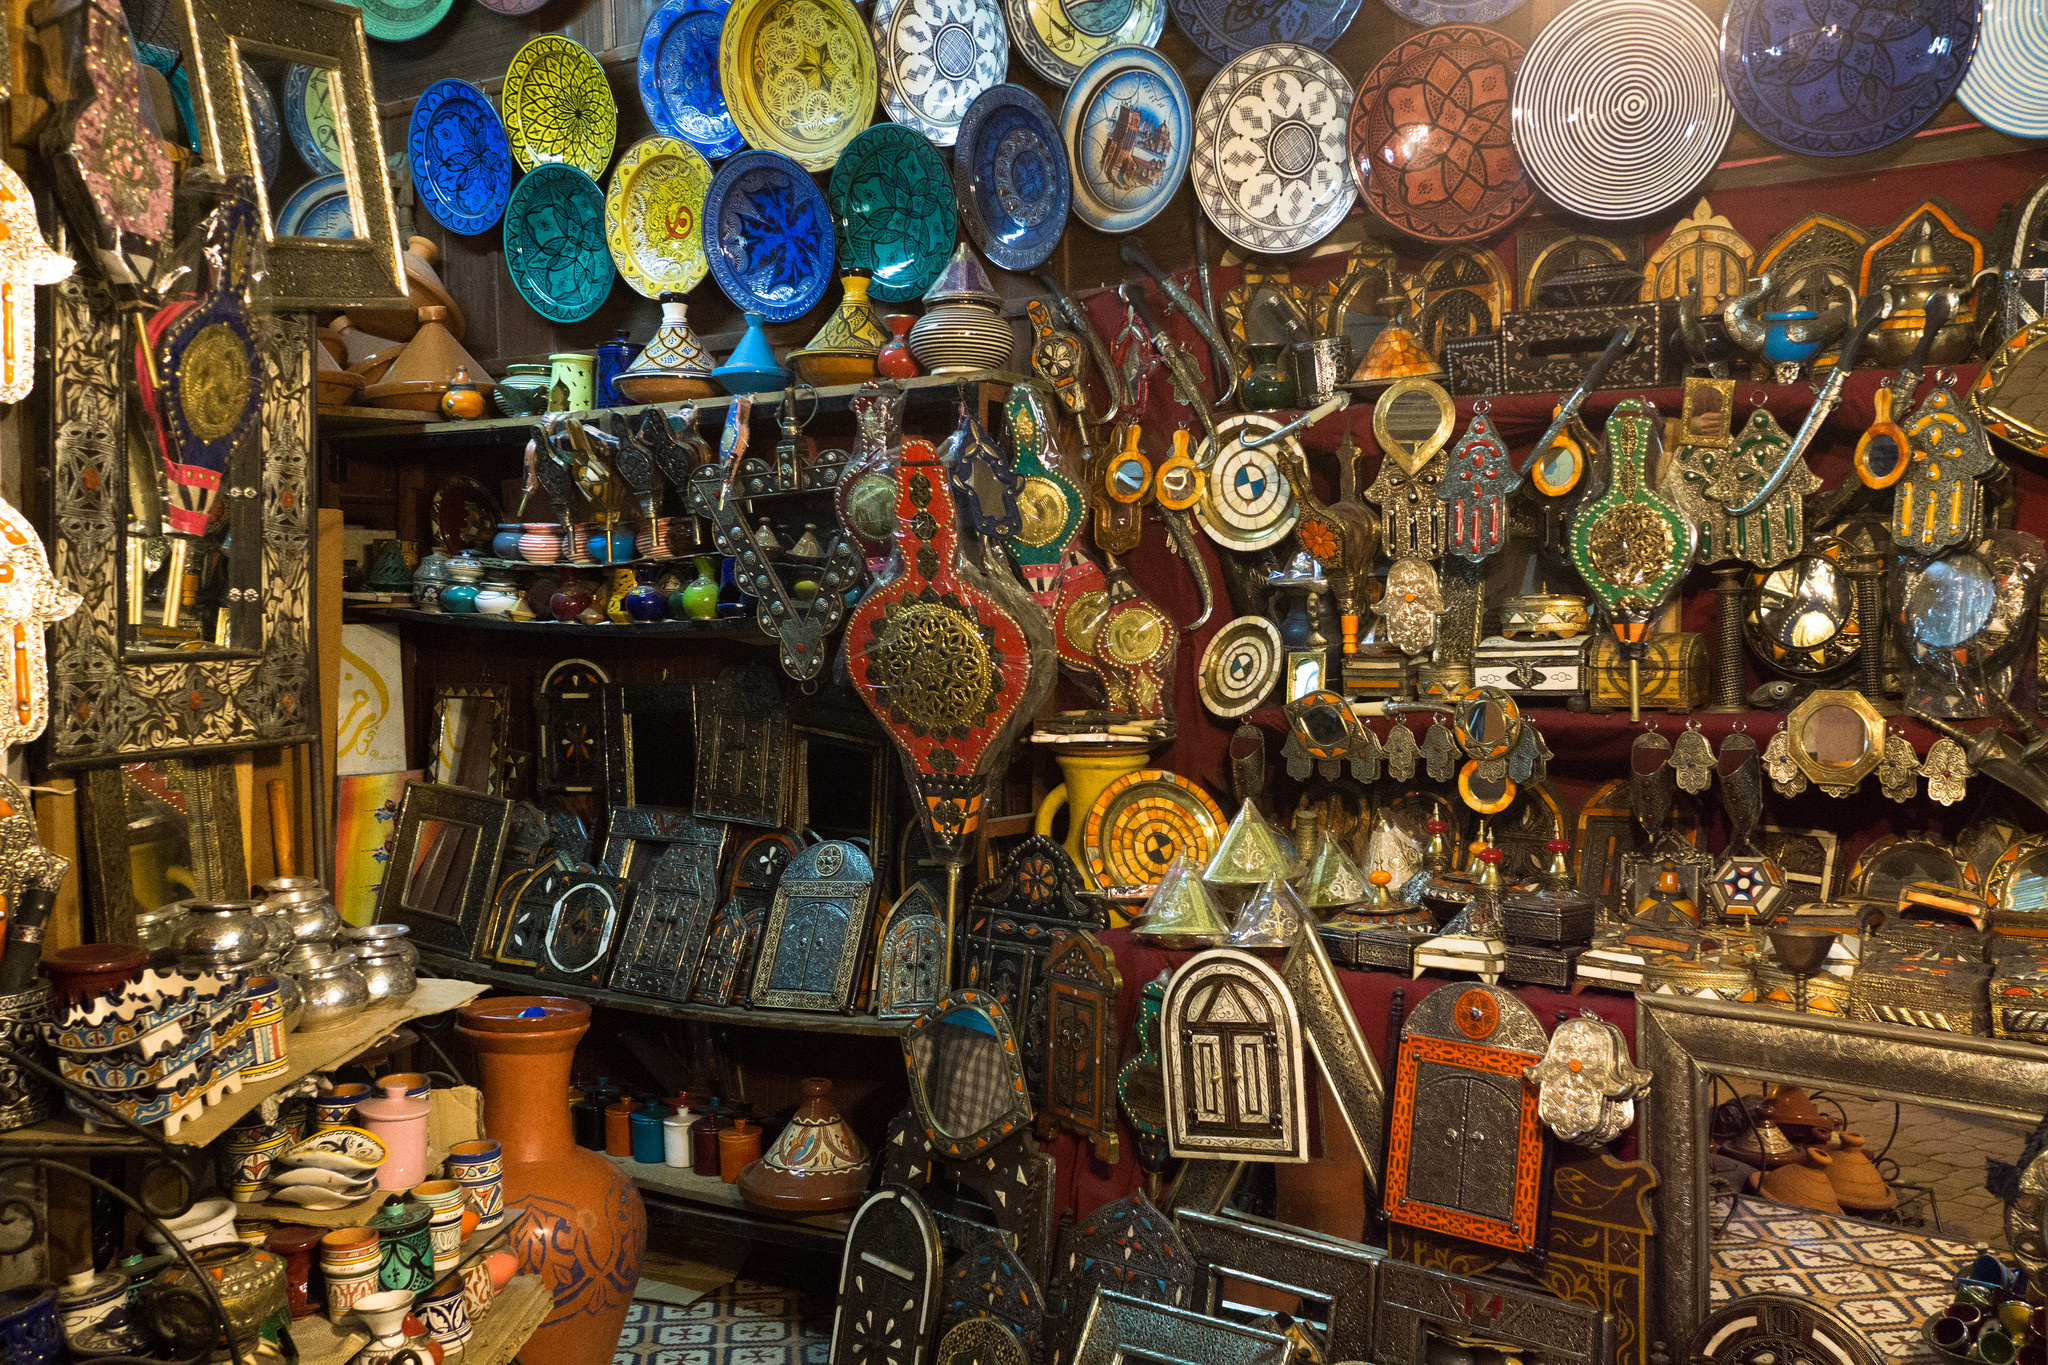 Shopping in Marrakech, Morocco